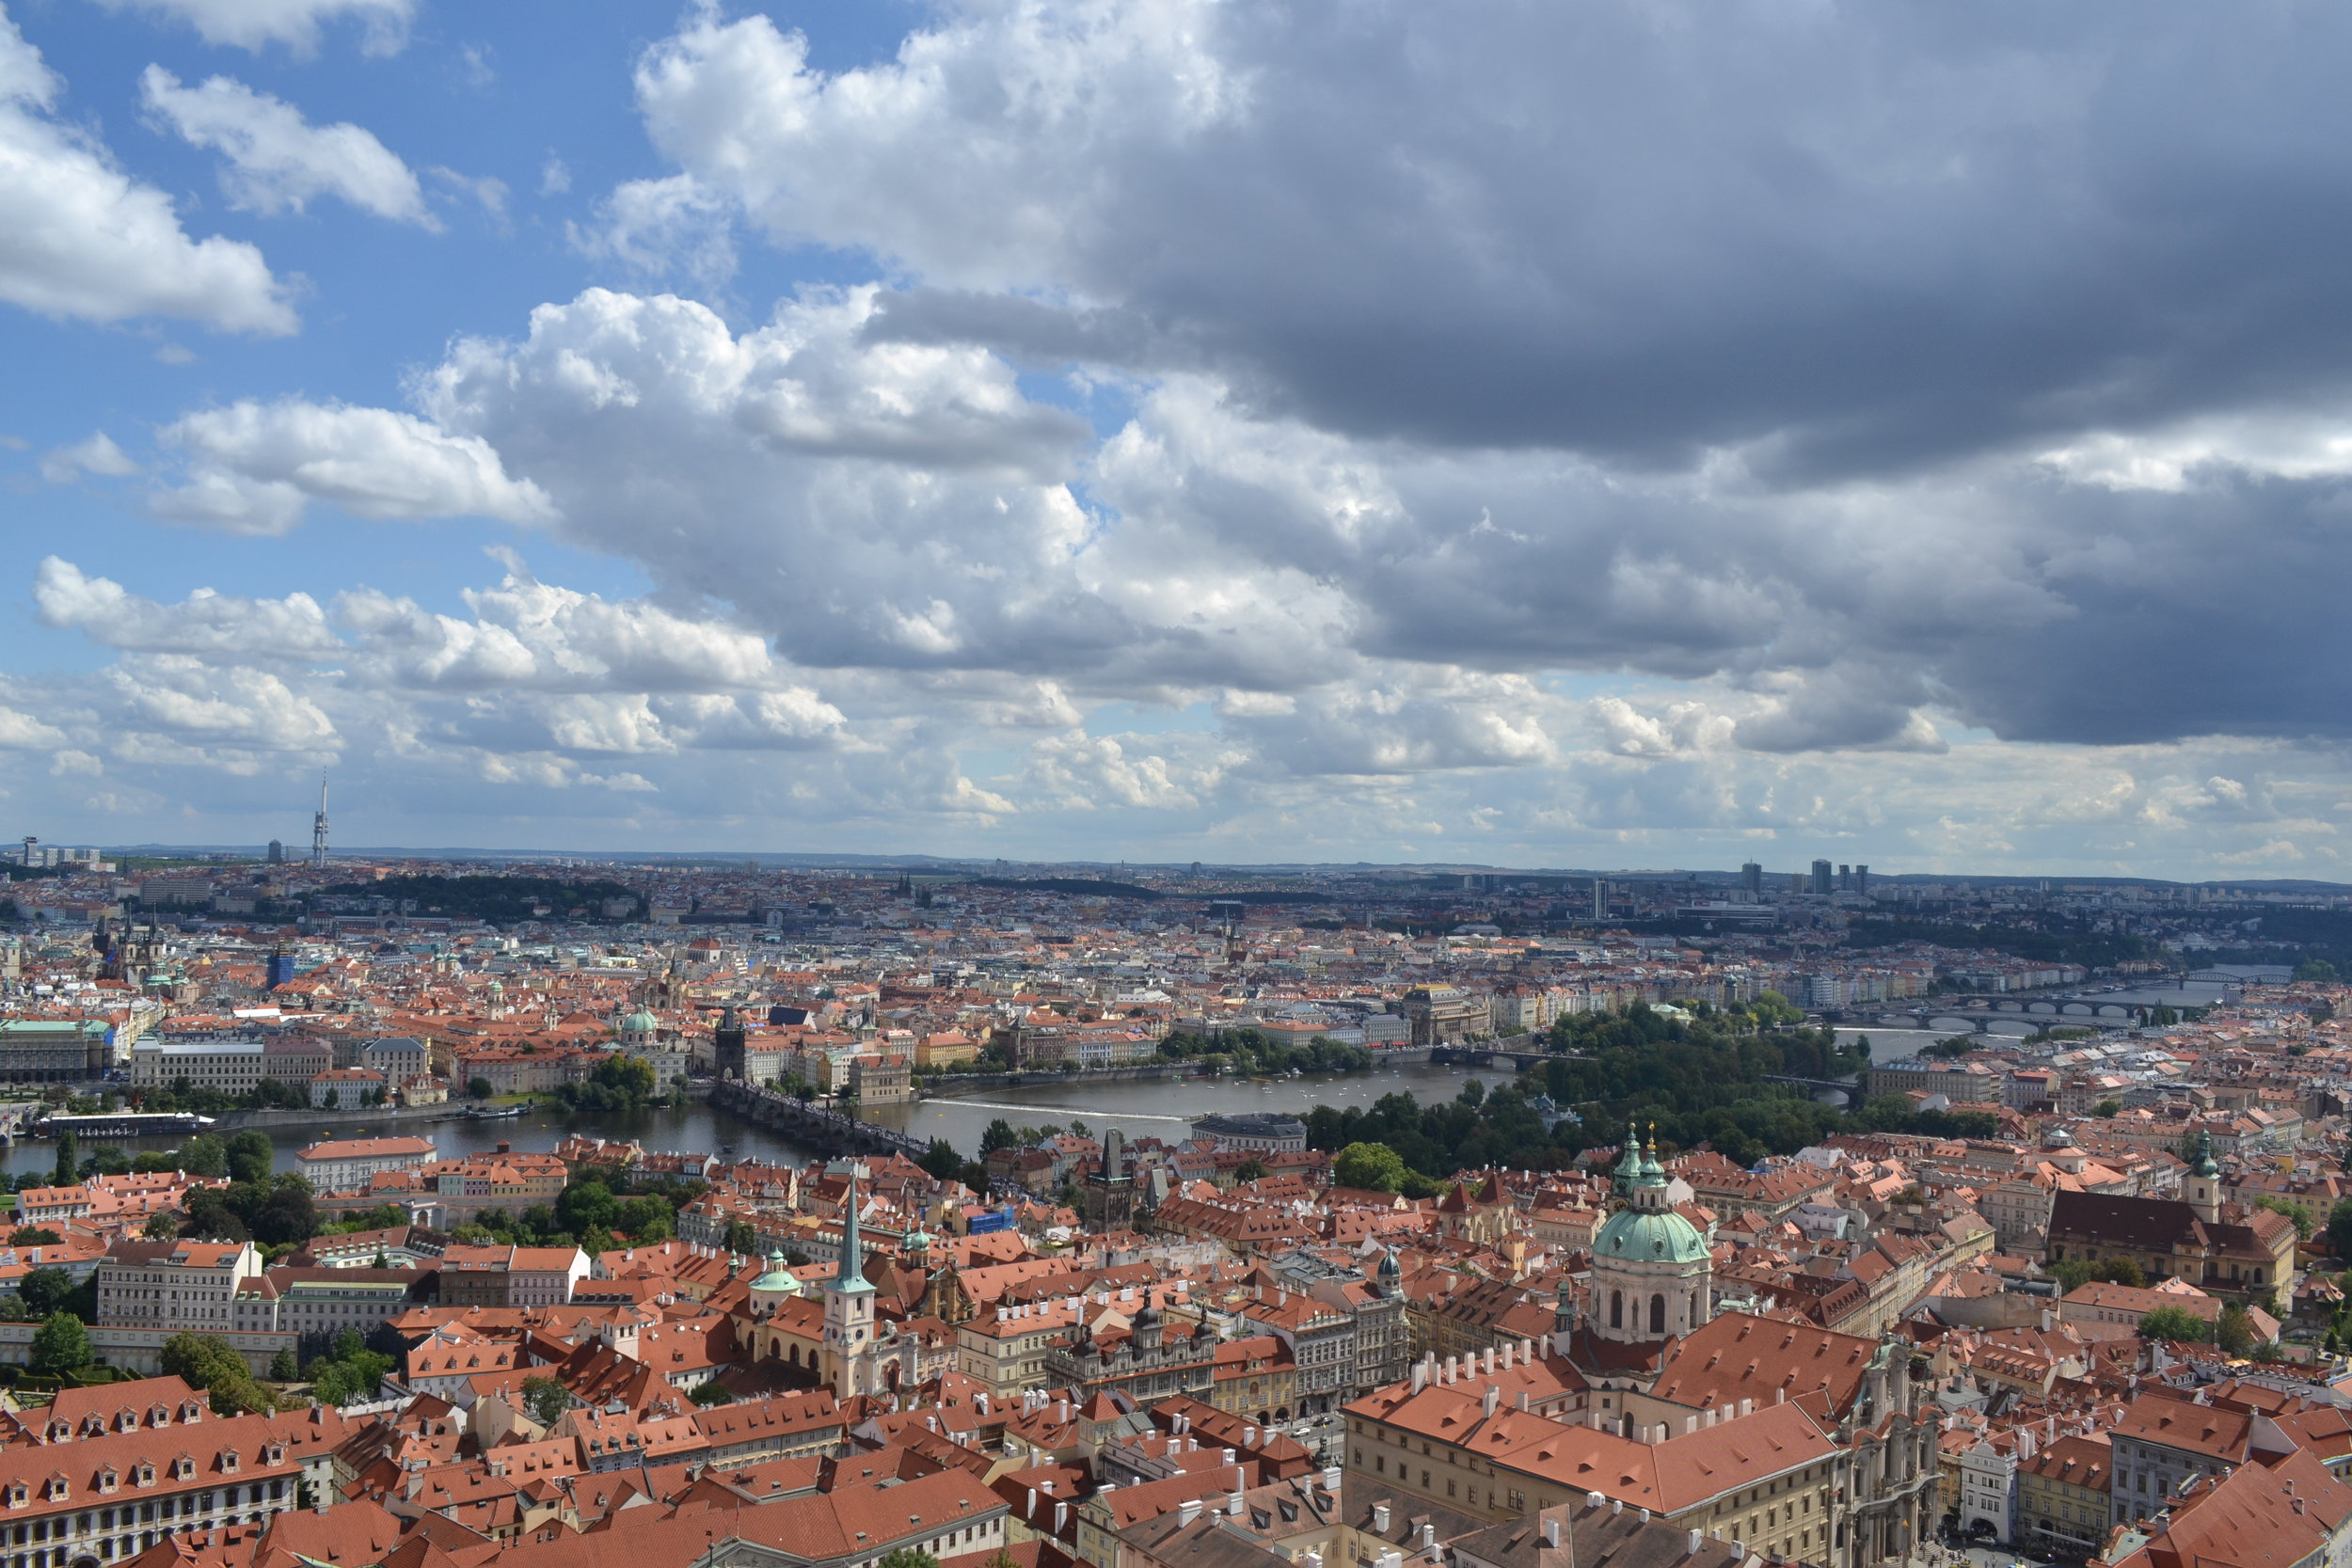 View from the Castle tower - 280 steps up